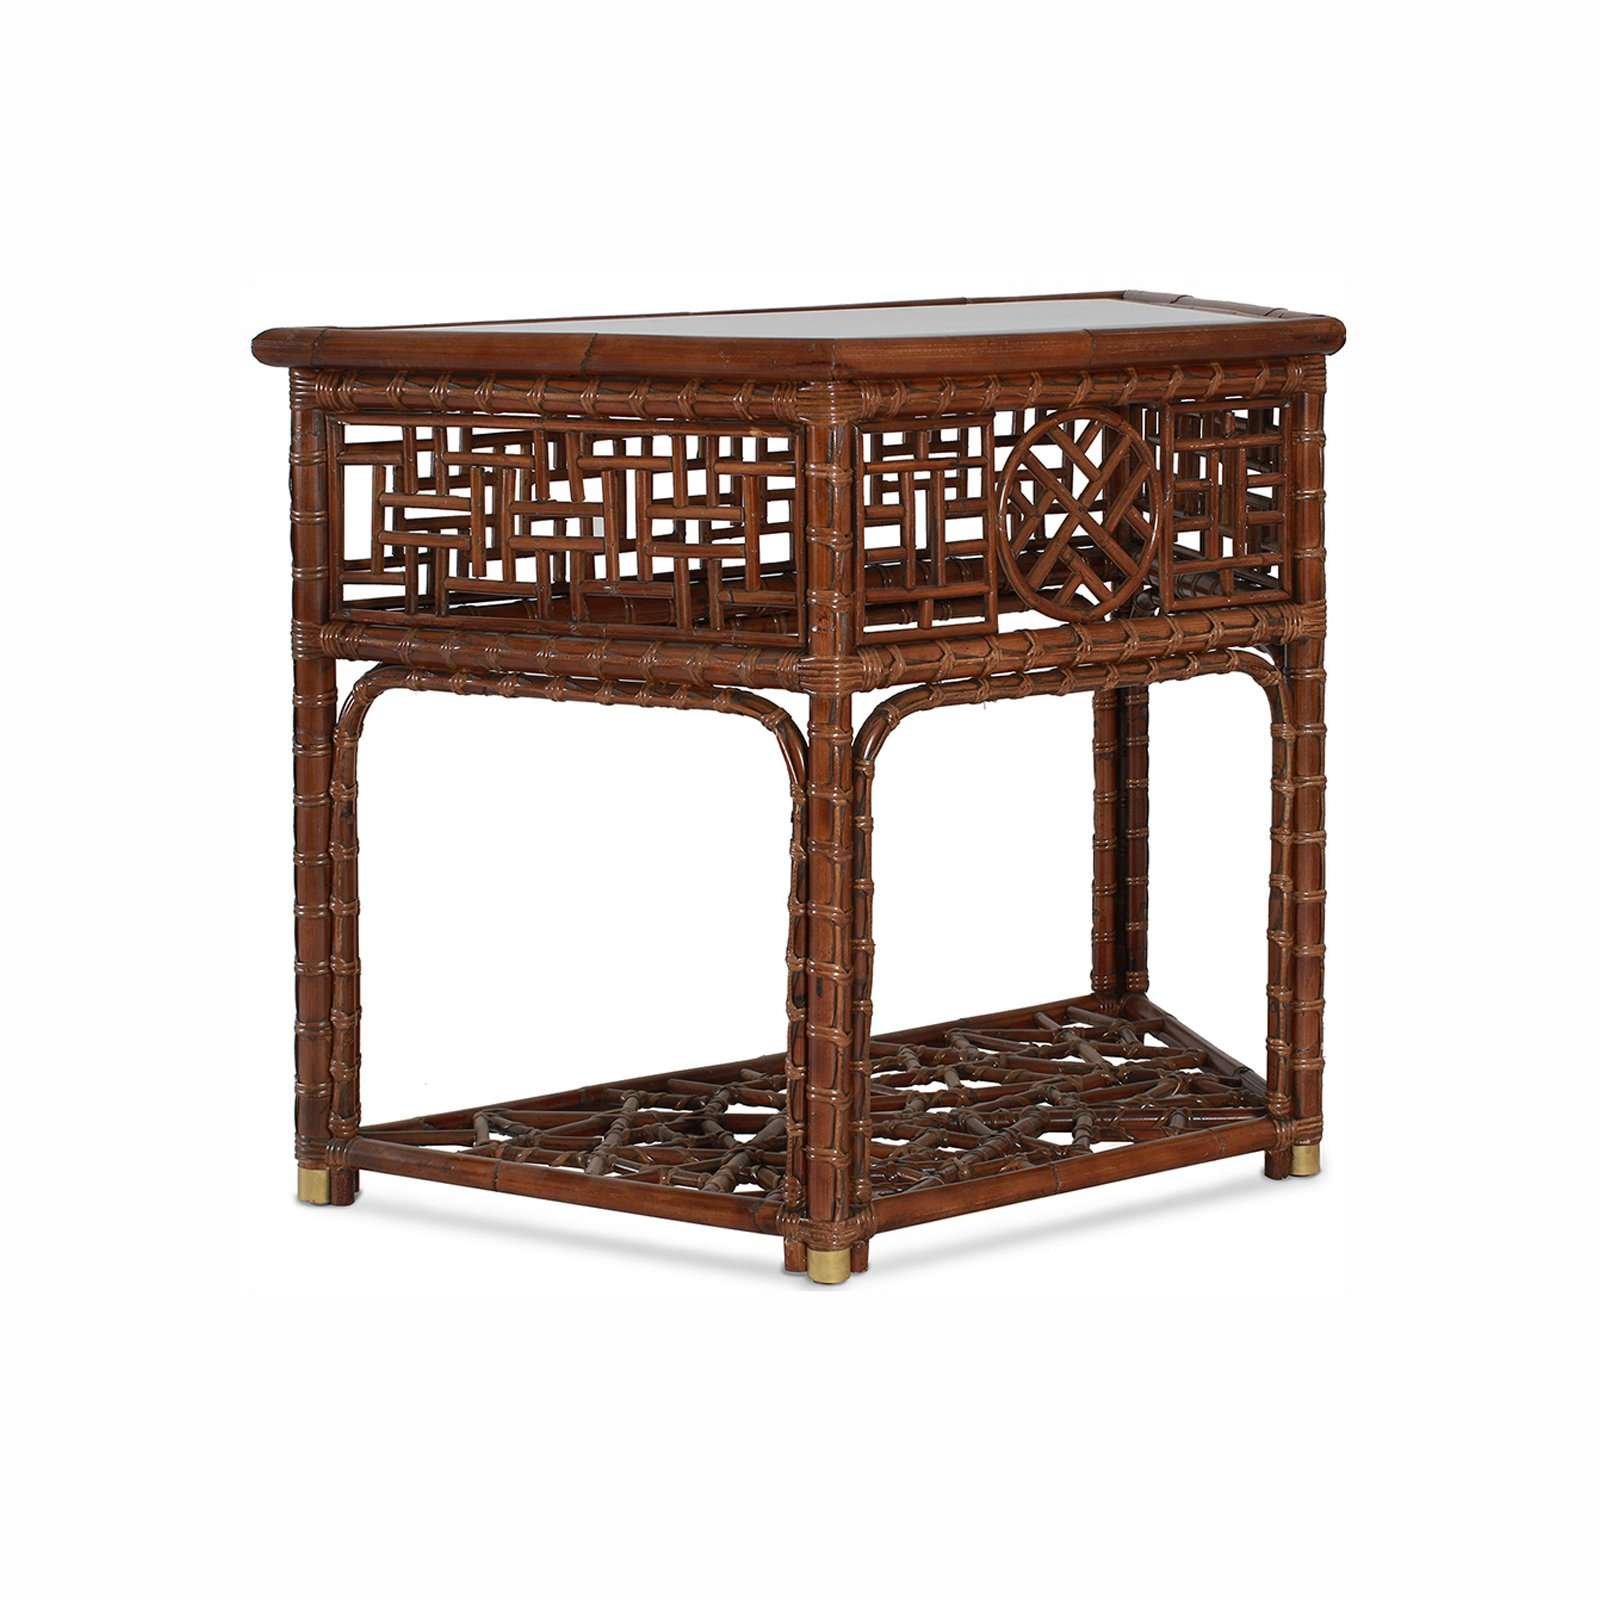 MANDALAY DEMI LUNE CONSOLE 2 - STUART MEMBERY HOME COLLECTION